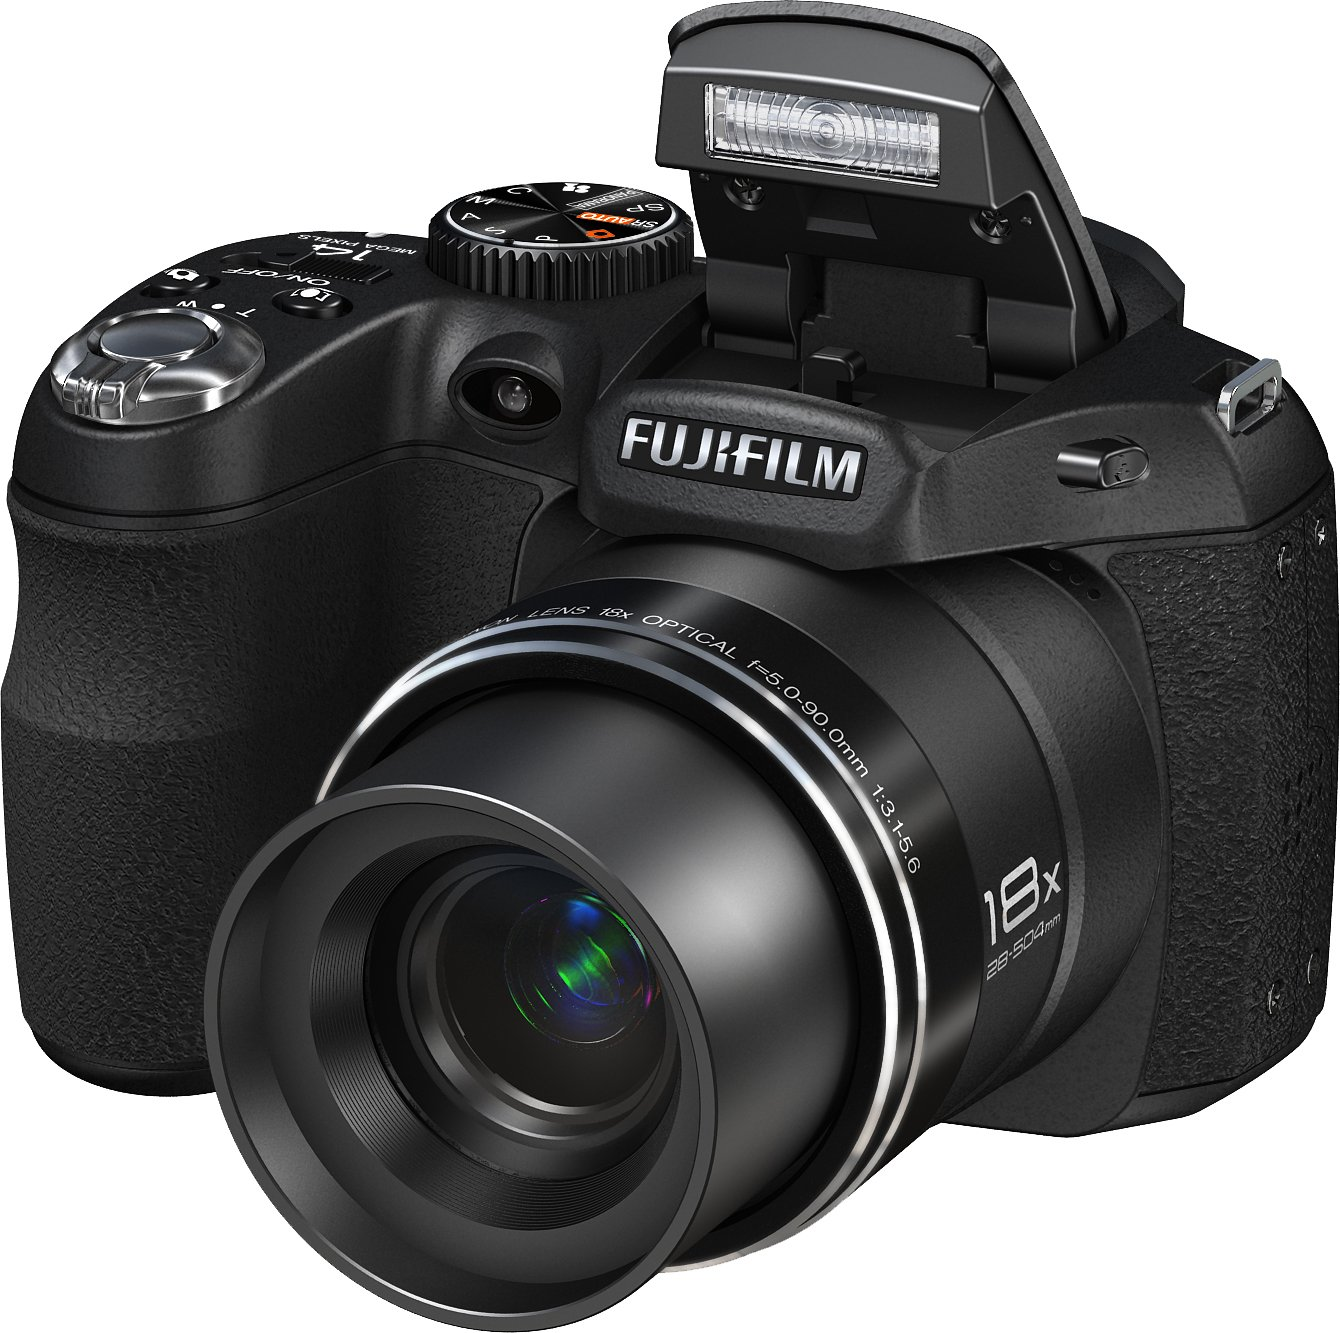 Camera Fujifilm Dslr Camera Price buy fujifilm finepix s2950 14 mp digital camera with fujinon 18x wide angle optical zoom lens and 3 inch lcd online at low price in